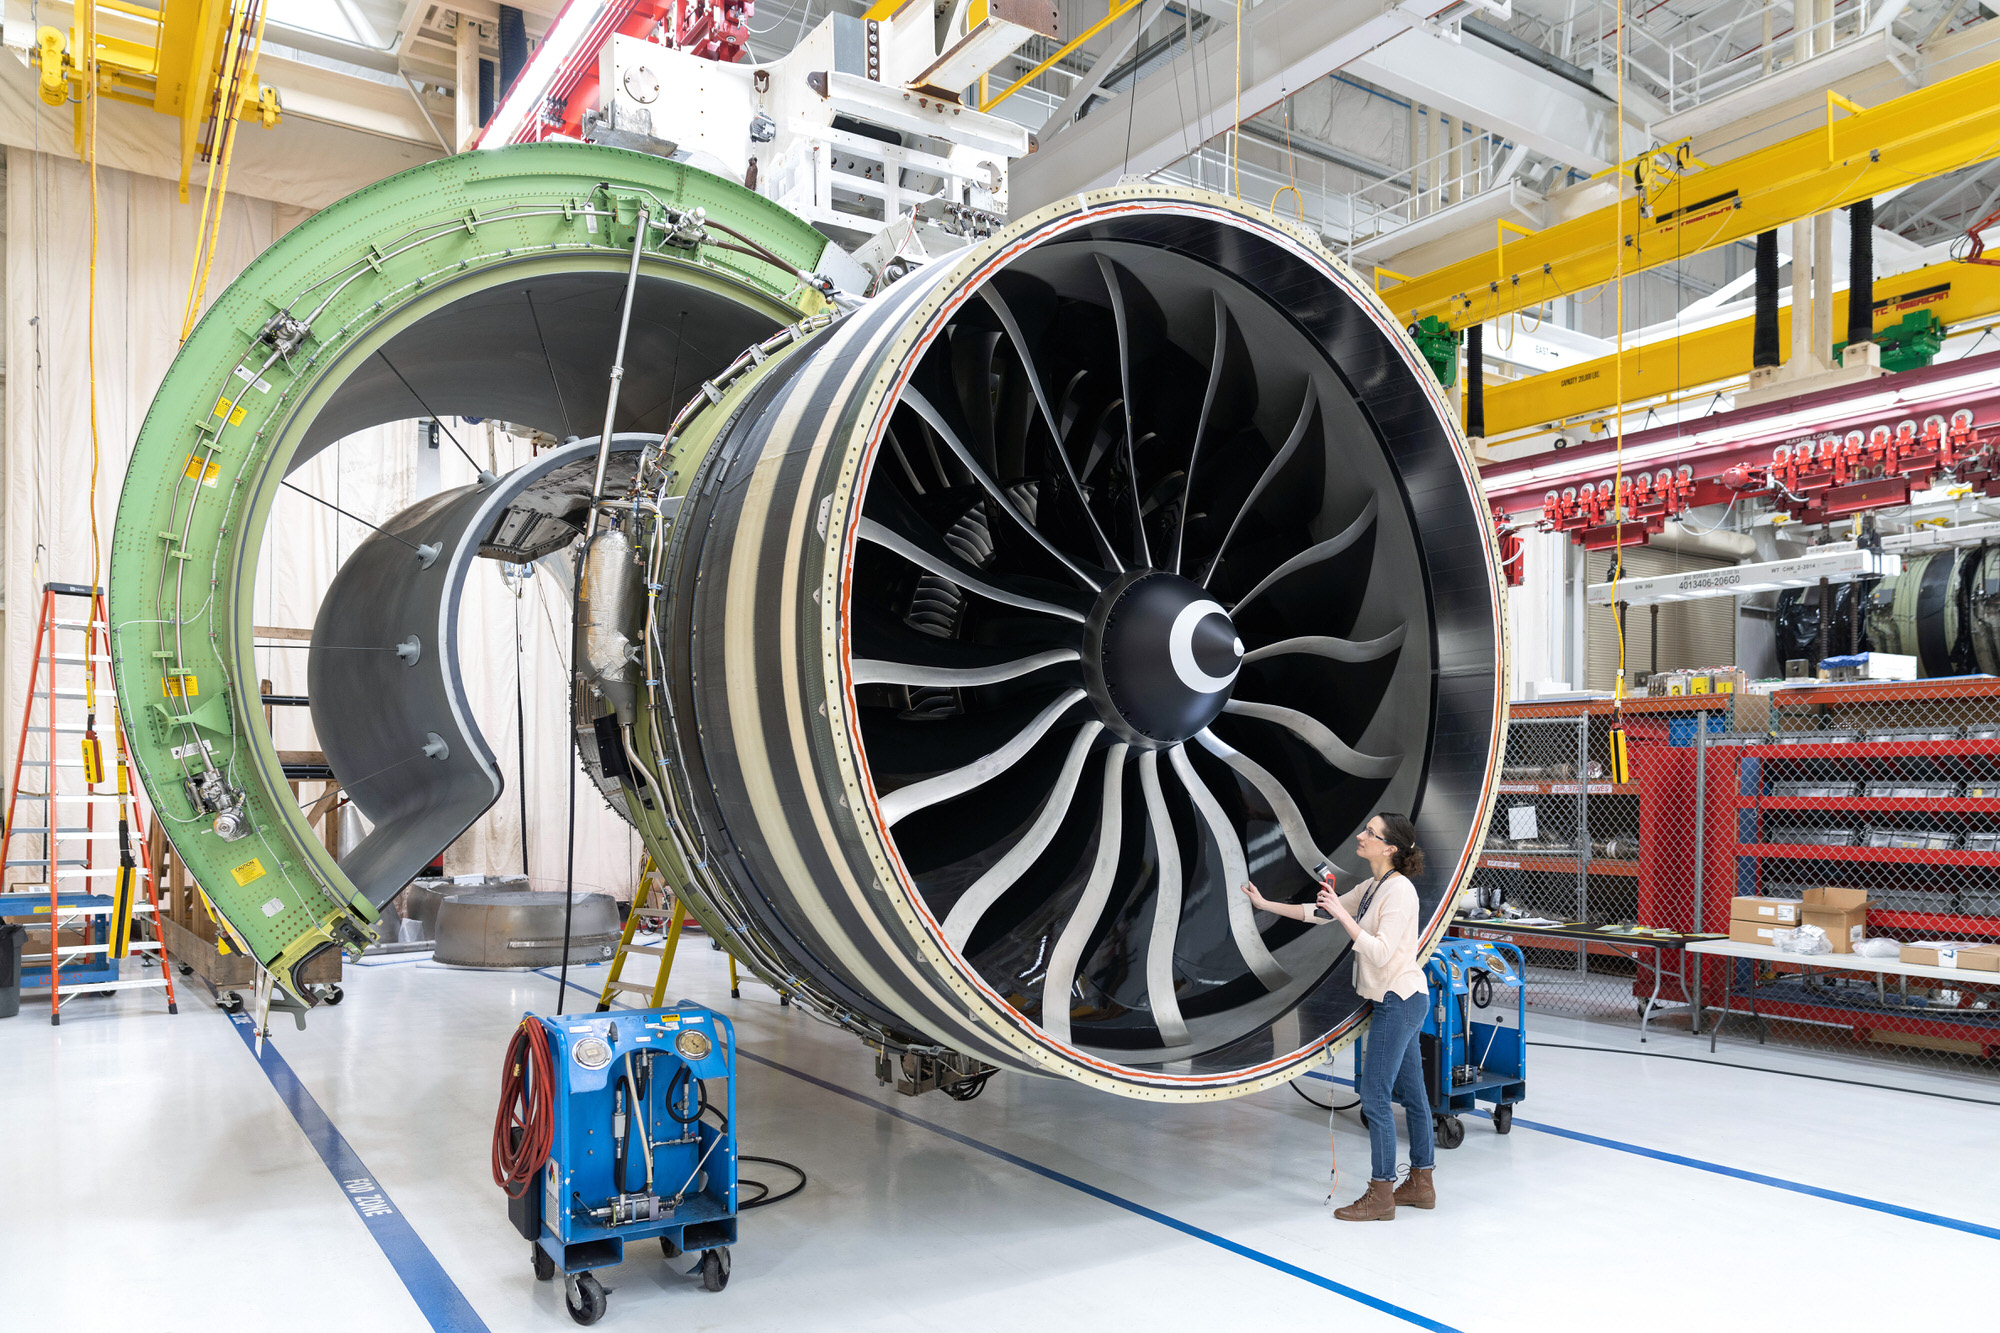 General Electric GE9X Aviation photography in Cincinnati, OH